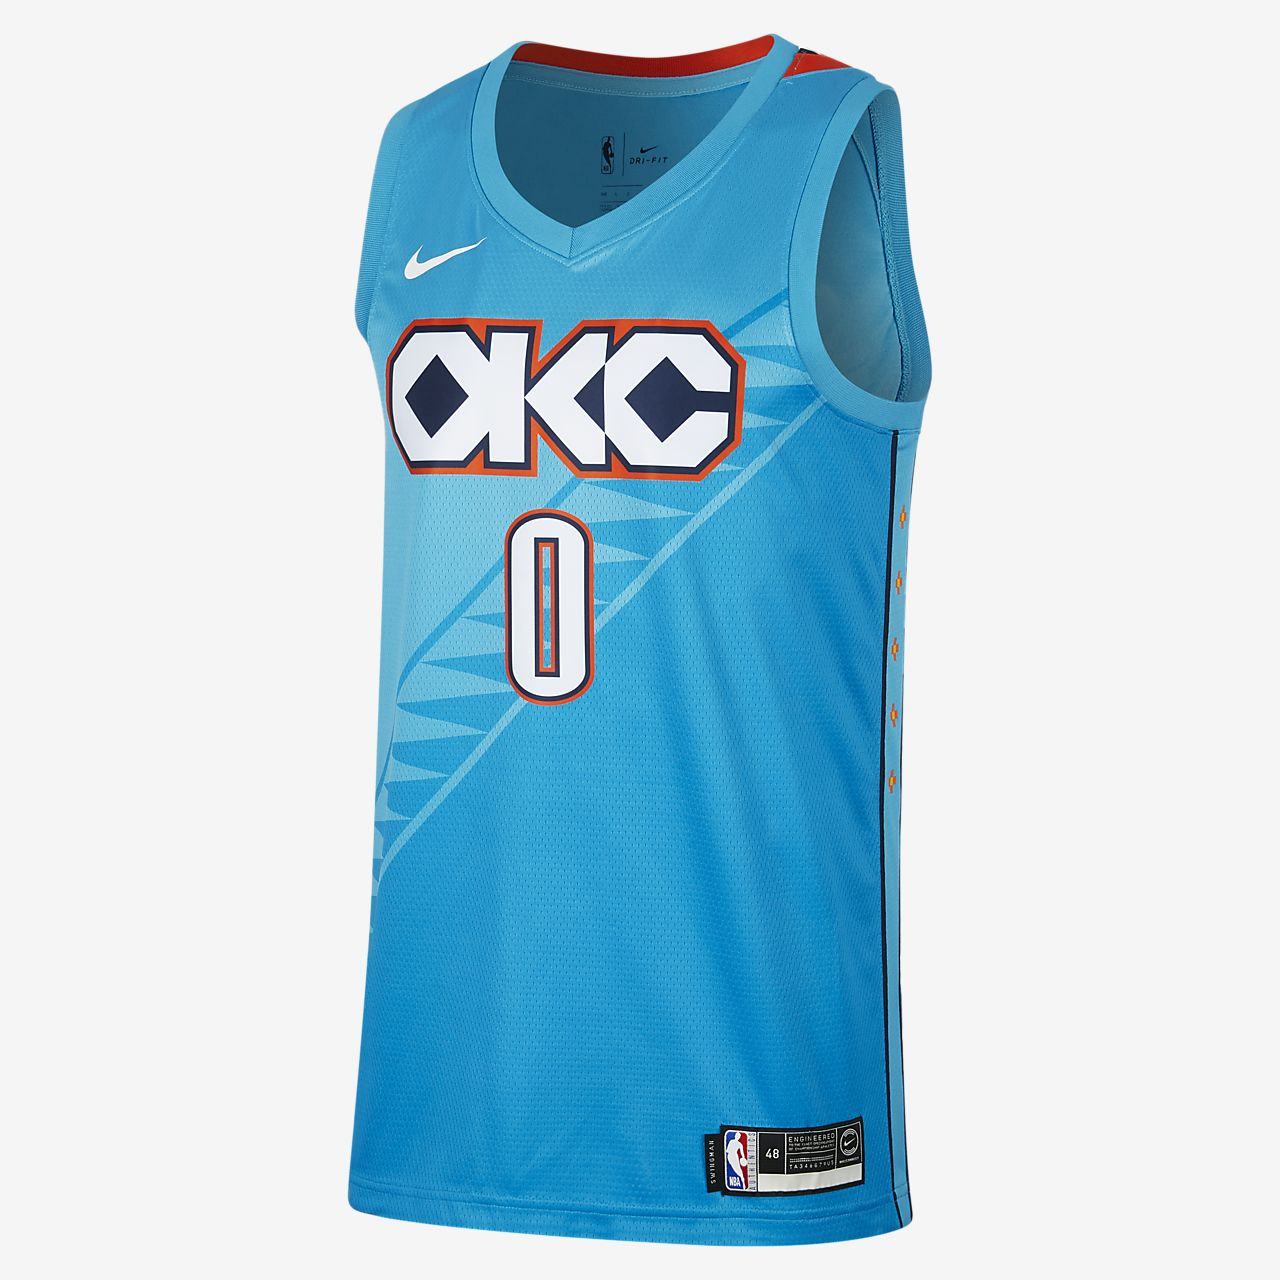 new product b1eaf d7641 promo code for russell westbrook jersey 5ae4c 0f4a9